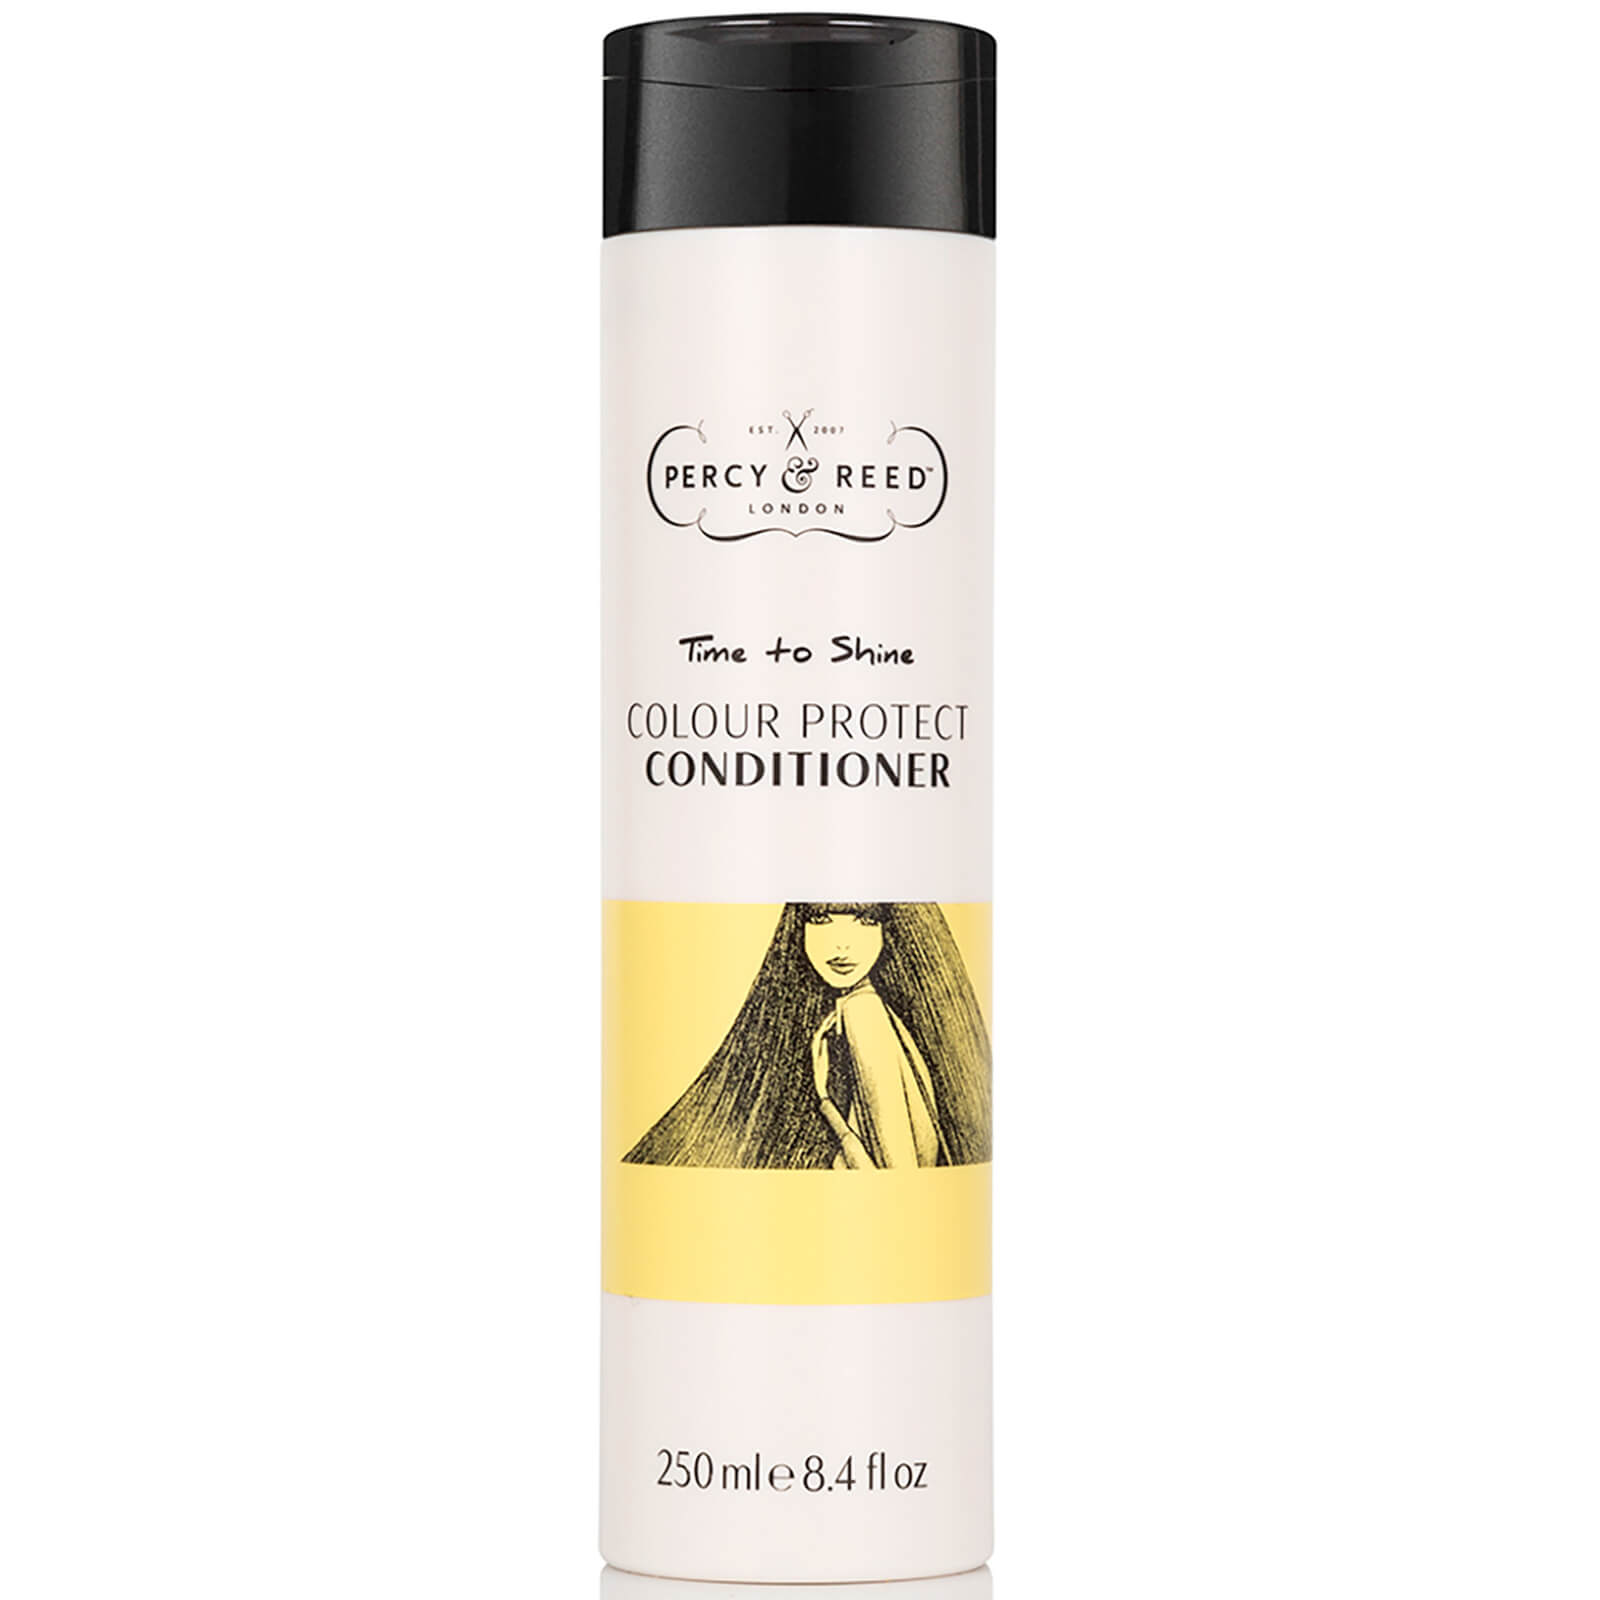 Percy & Reed Time to Shine Colour Protect Conditioner 250ml